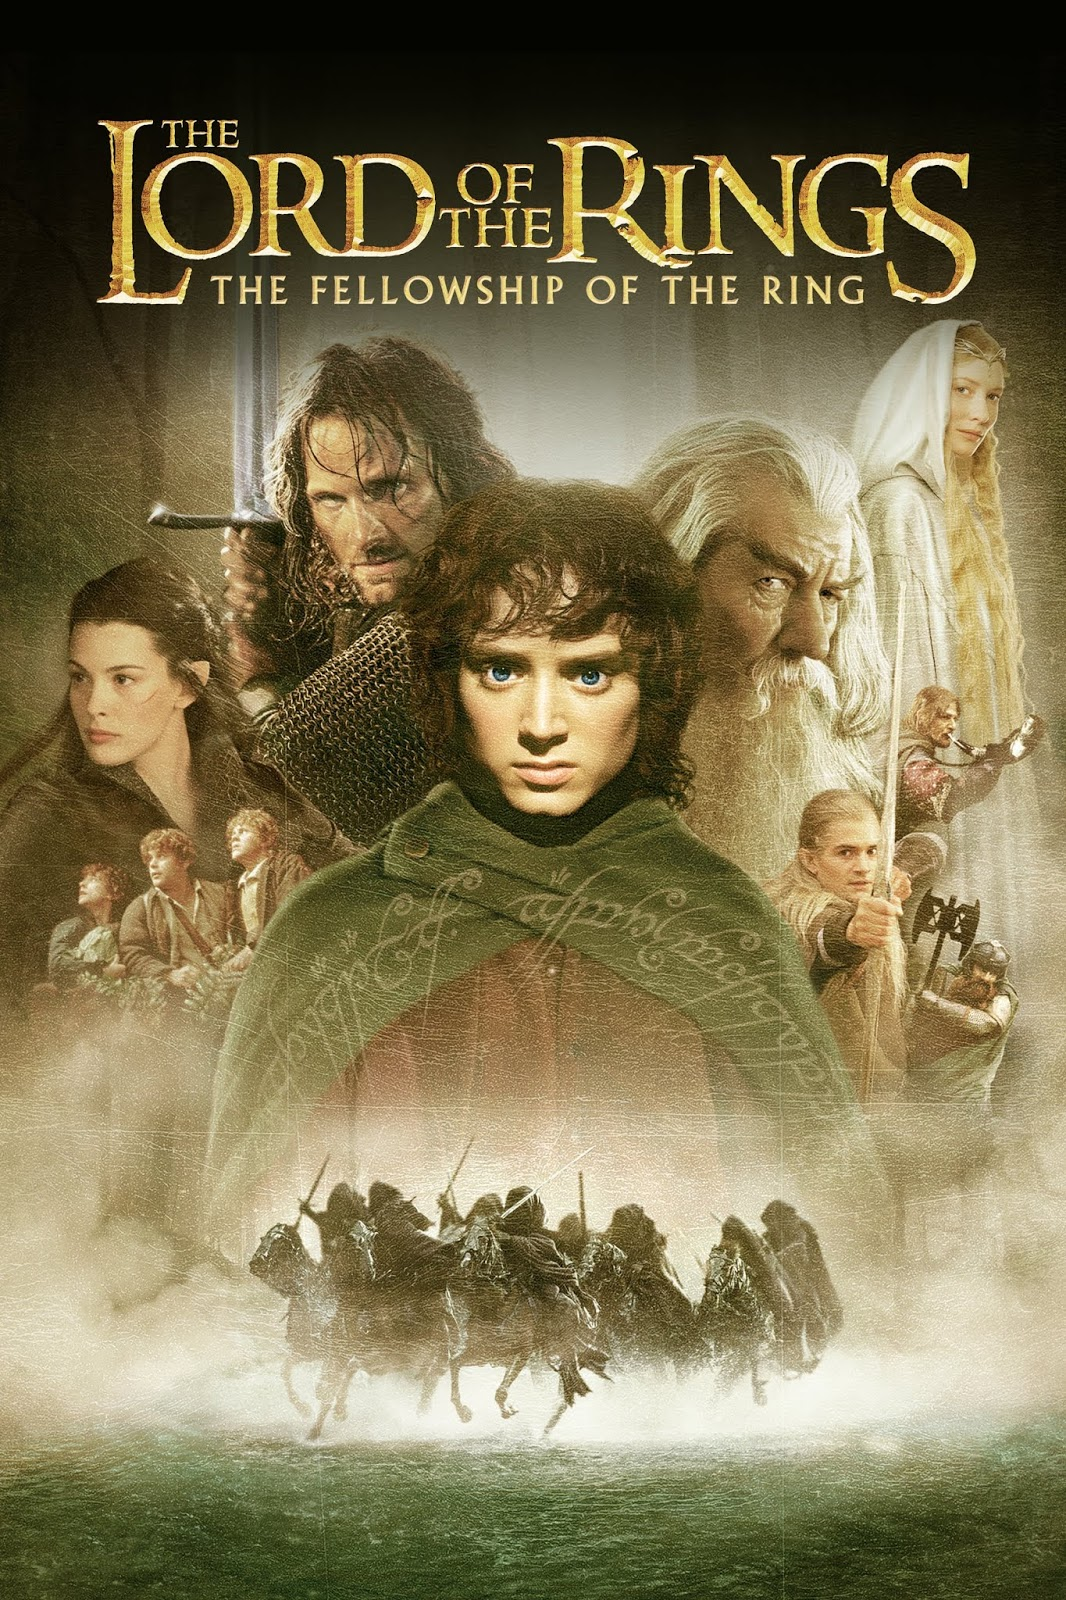 THE LORD OF THE RINGS 1 TAMIL DUBBED HD